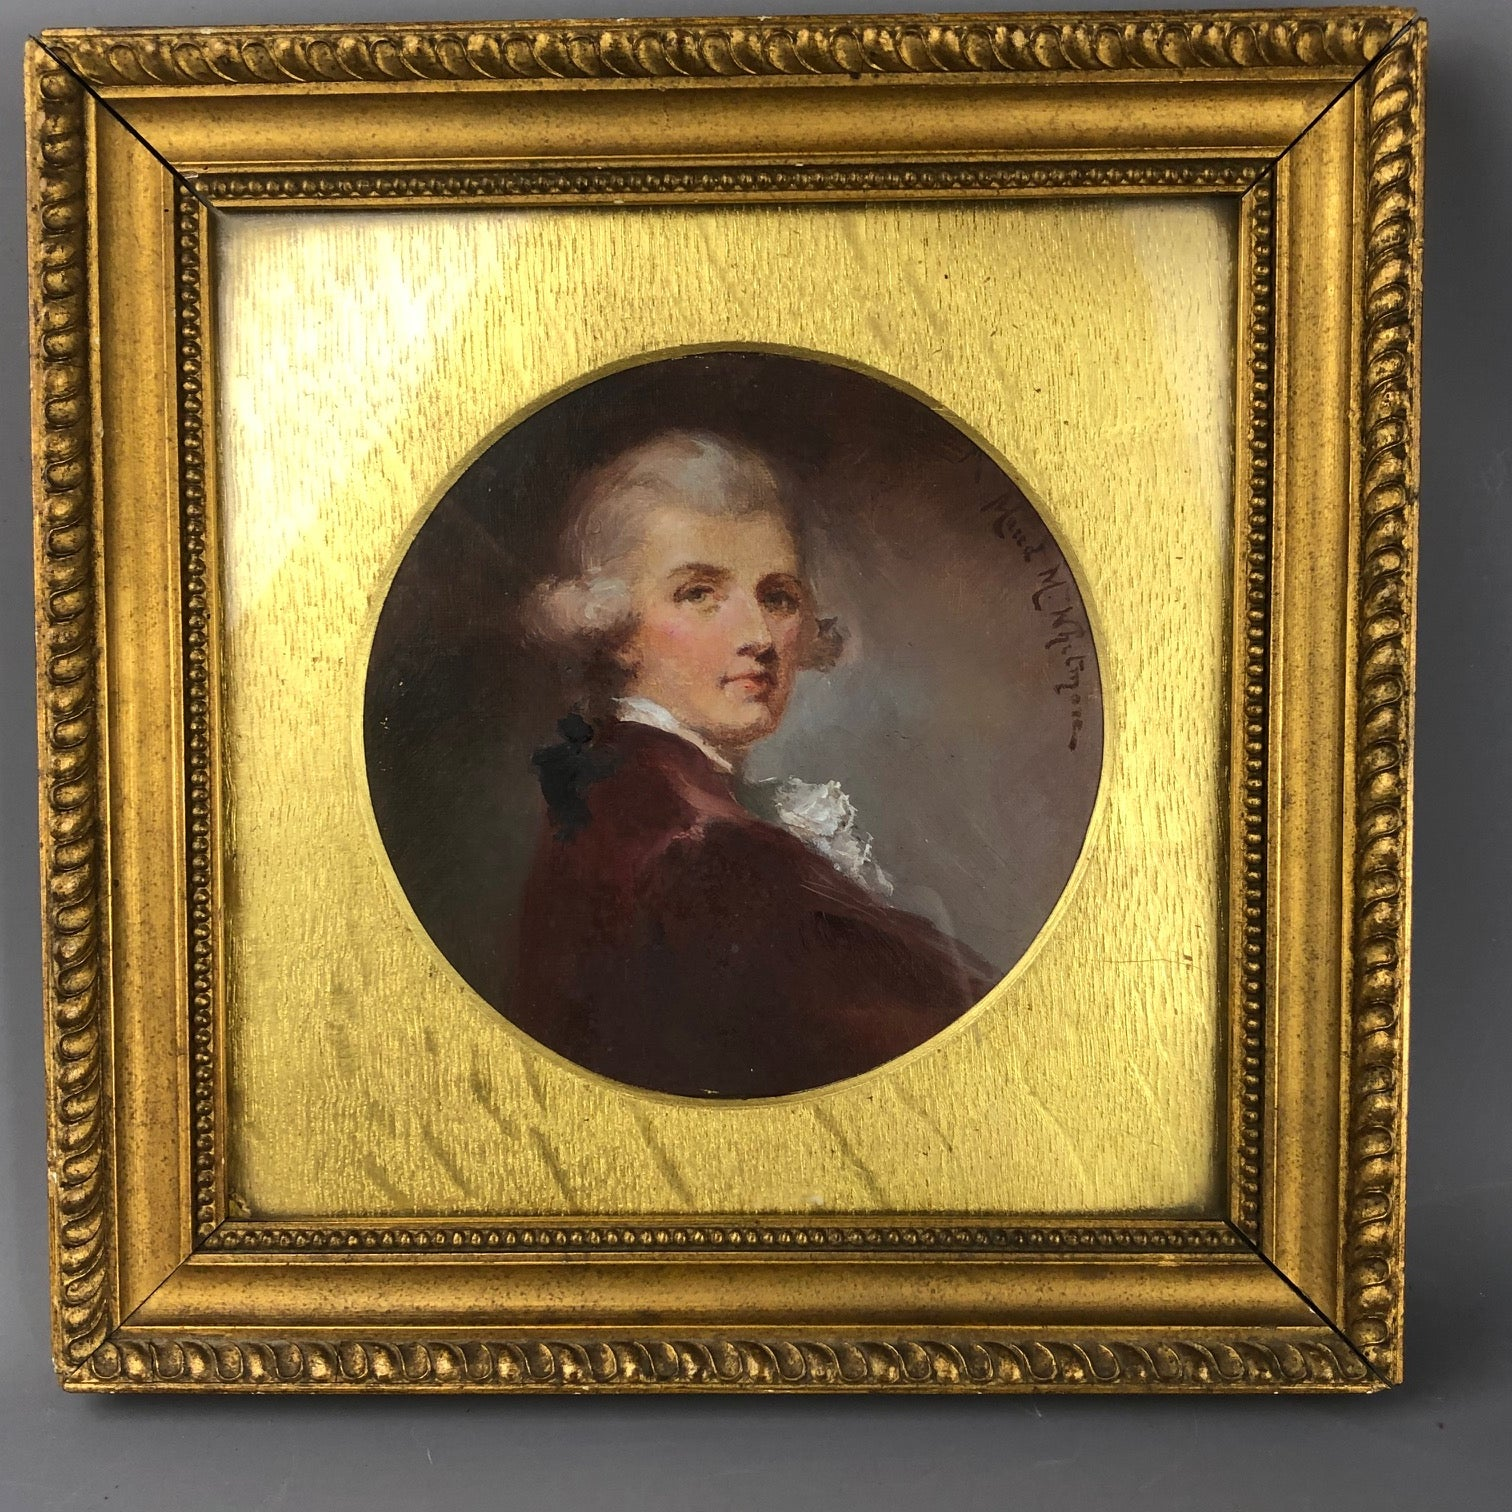 Framed-Oil-On-Canvas-Round-Portrait-Of-A-Gentleman-By-Maud-Whitmore-Antique-Victorian-c1896